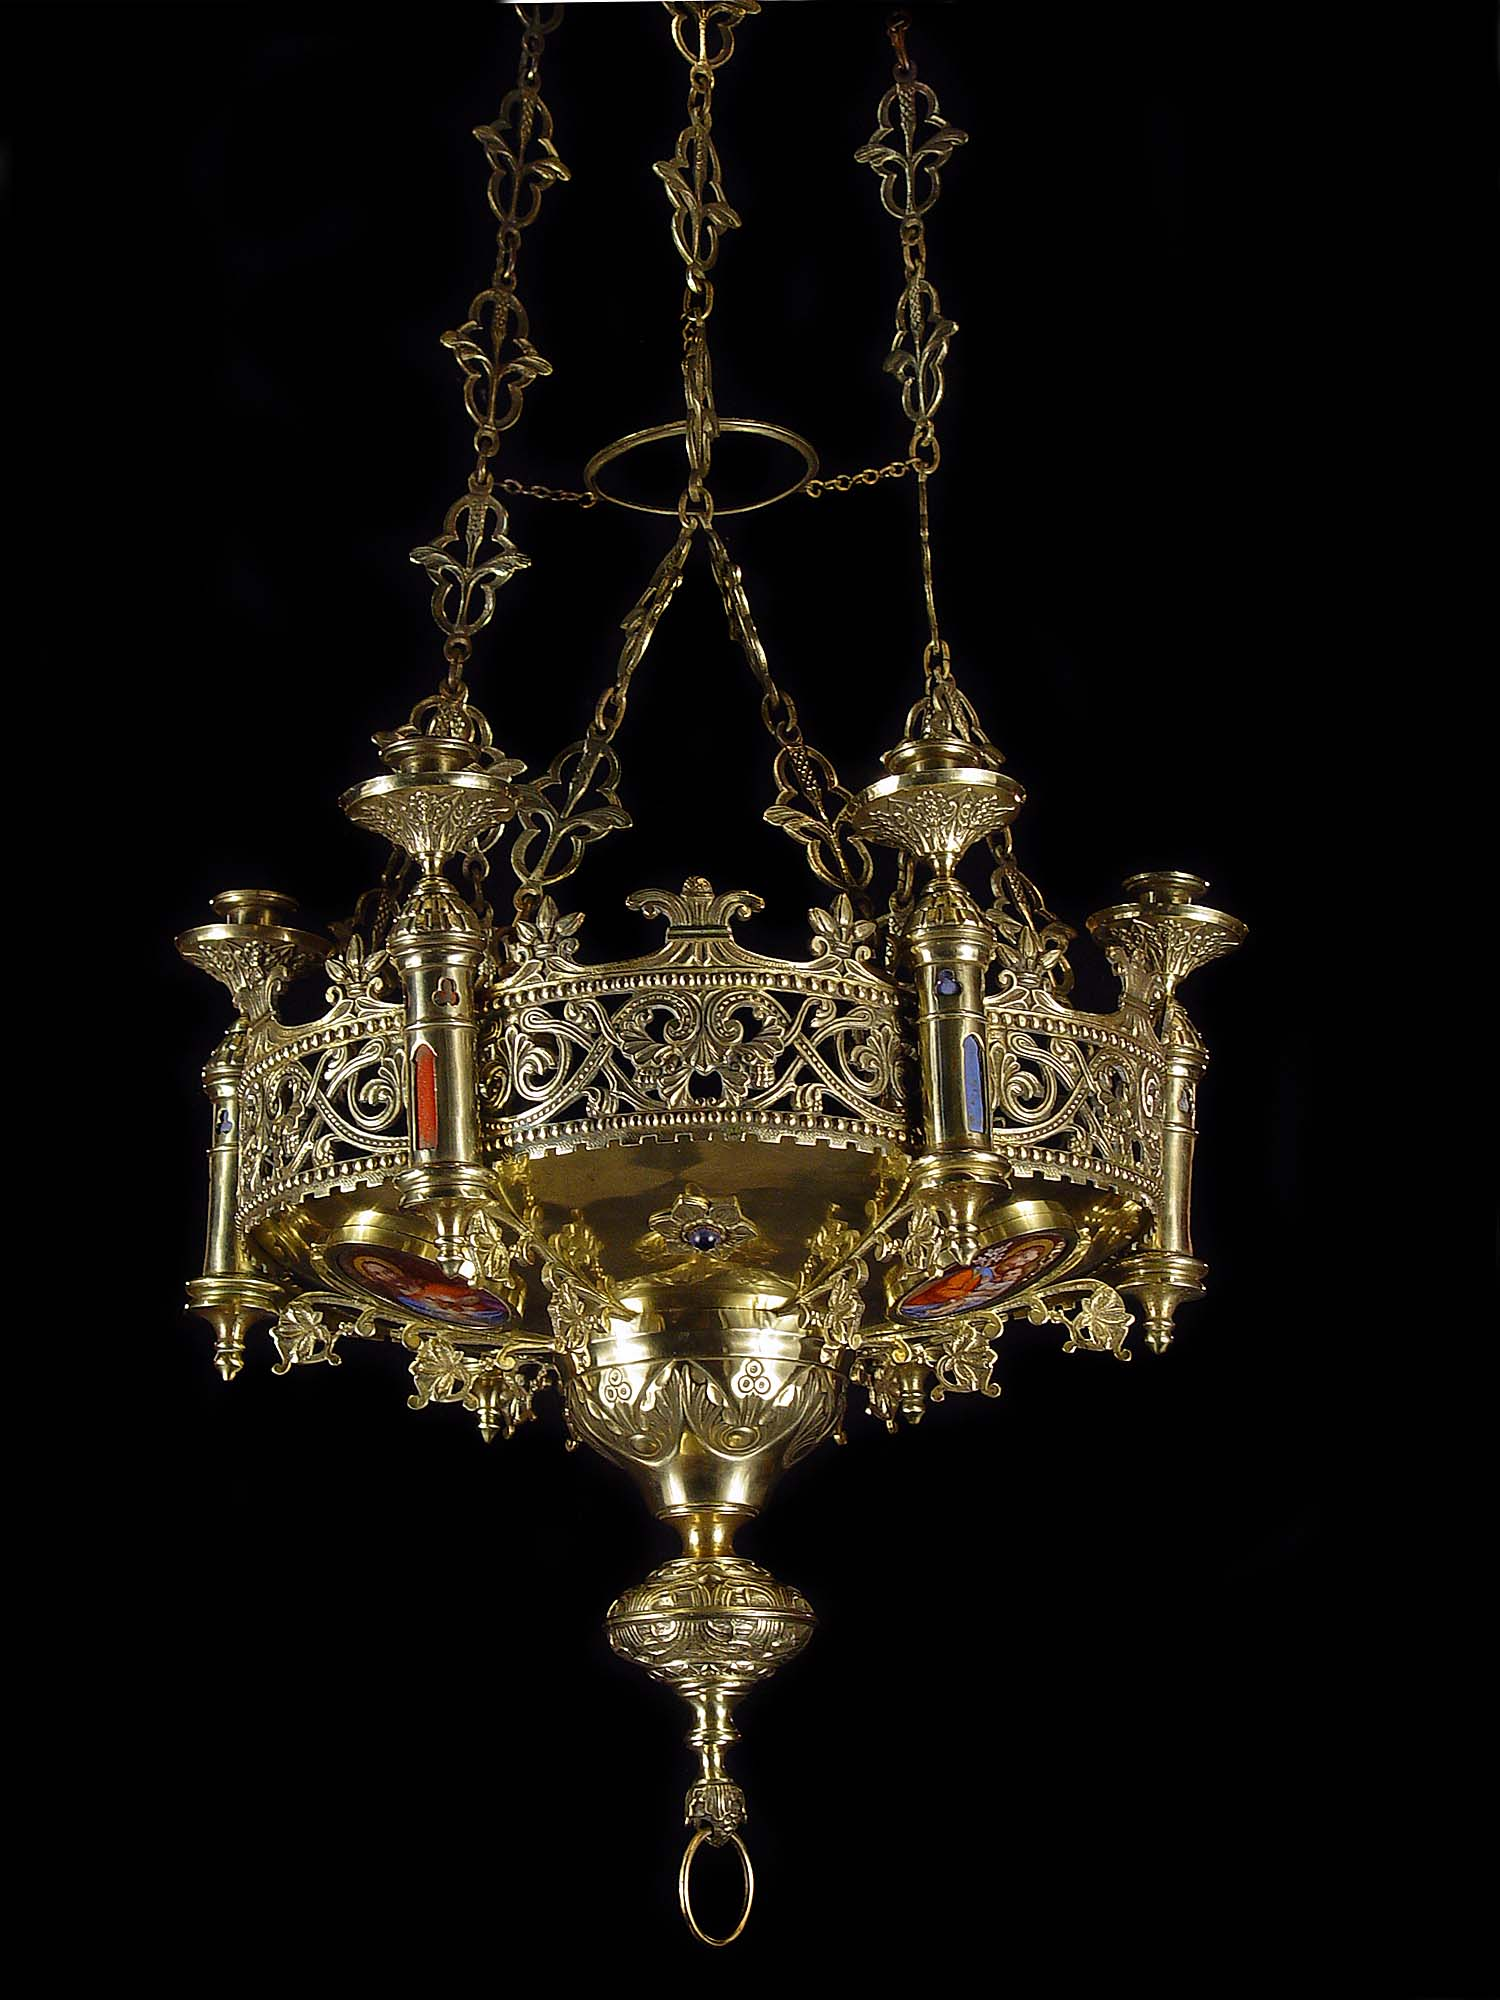 Lighting Glamour Gothic Chandelier With Unique And